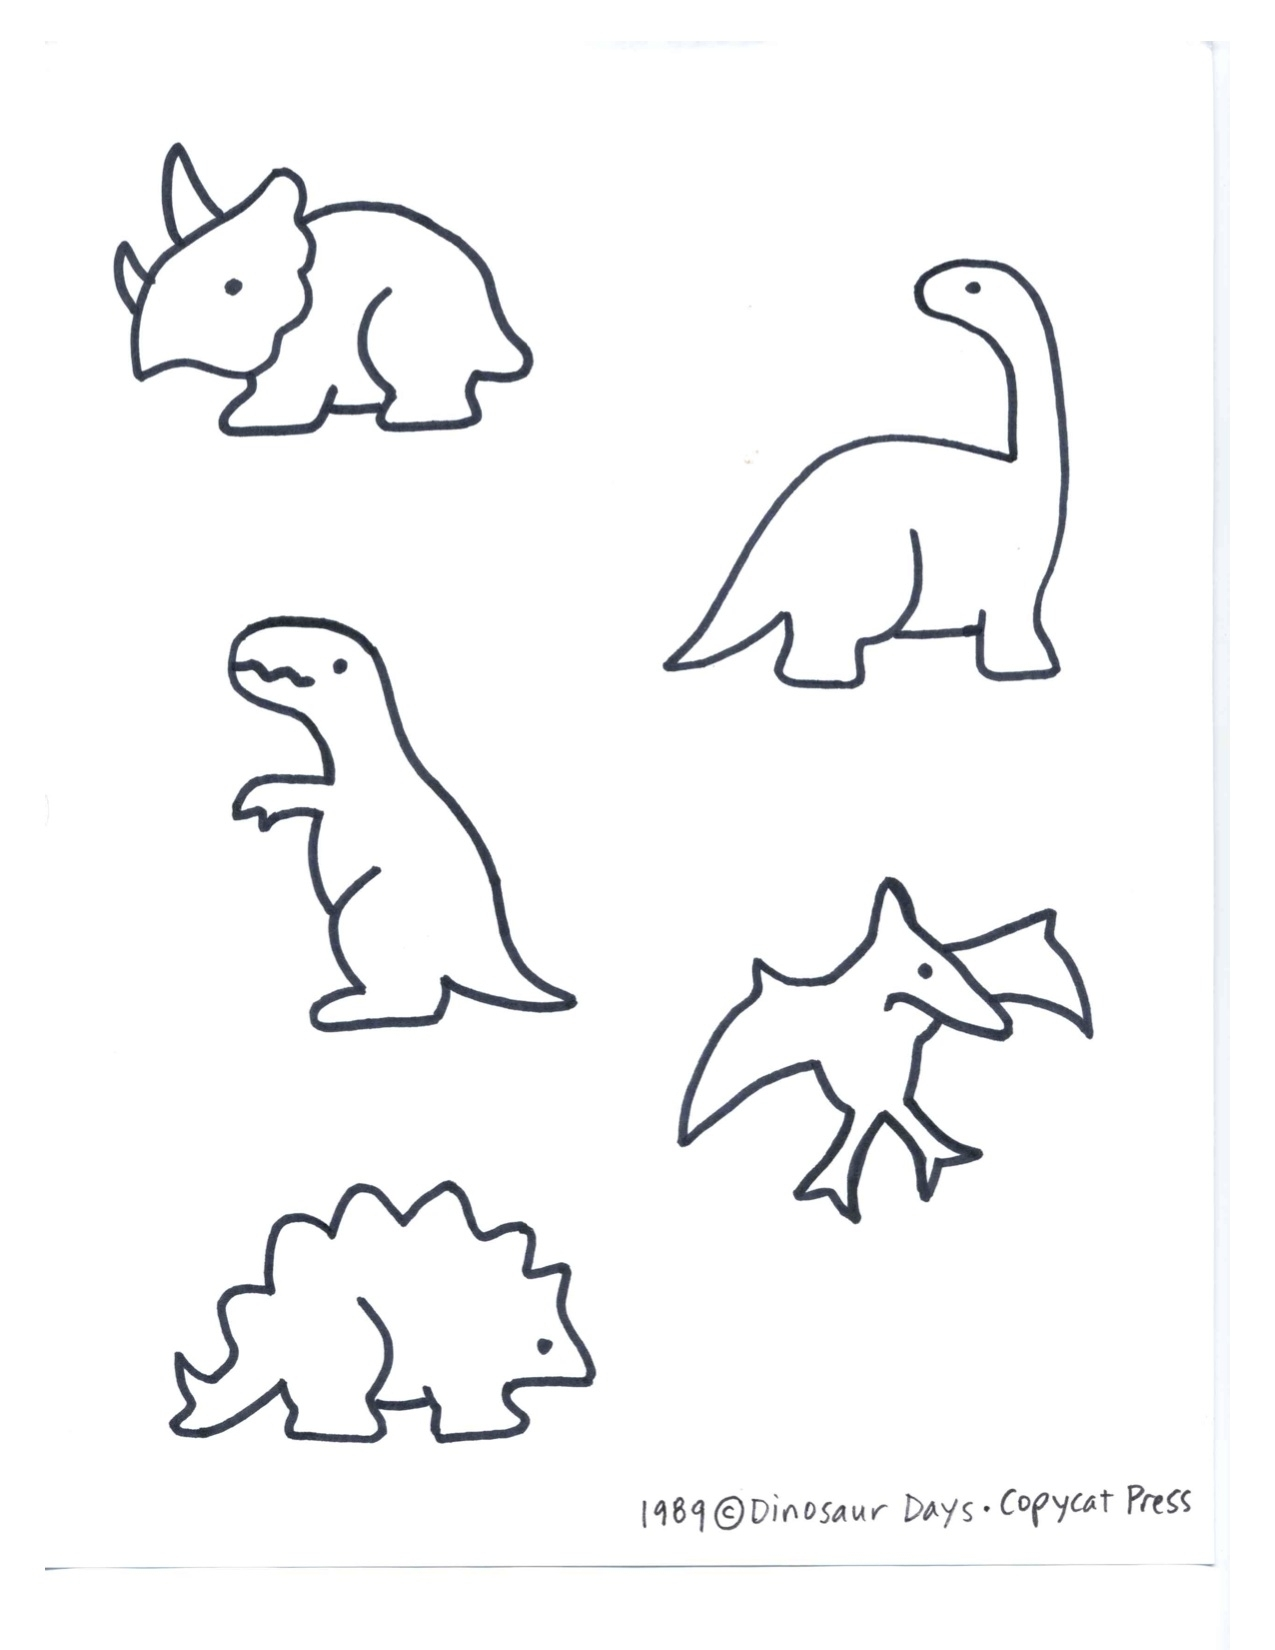 1275x1650 Dinosaurs Kindergarten Nana intended for Simple Dinosaur Drawing